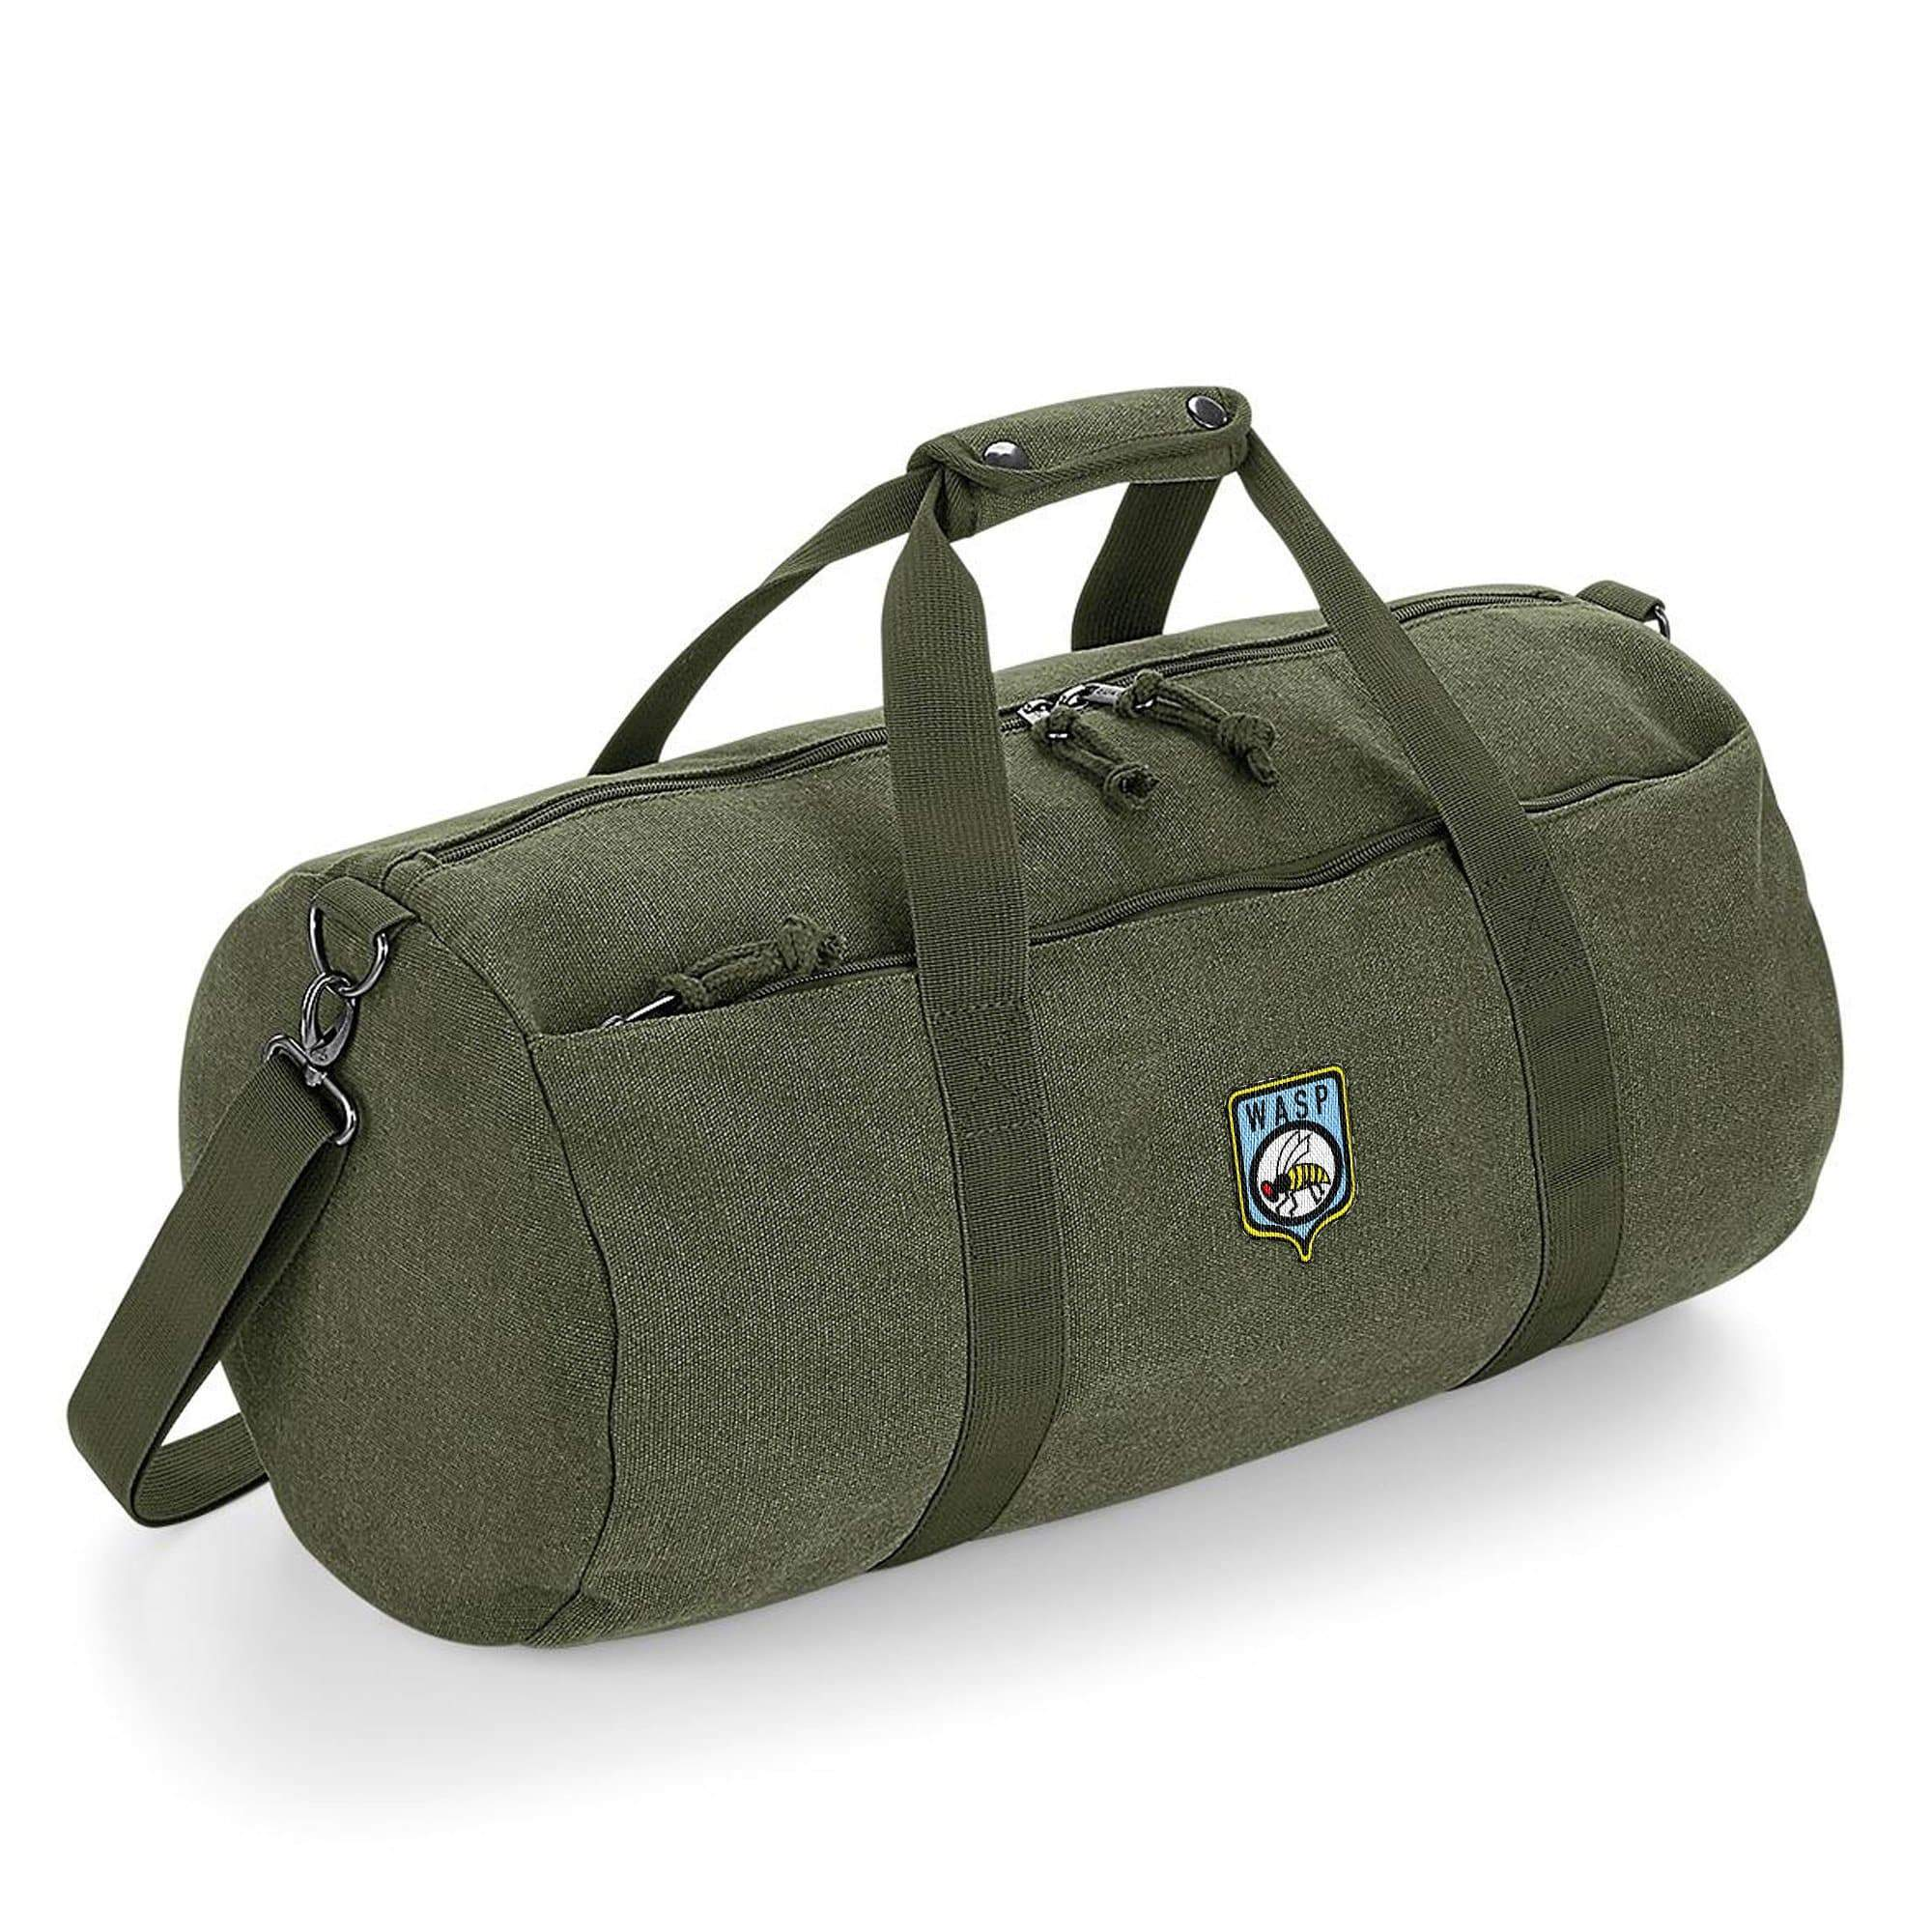 Stingray WASP Logo Barrel Bag [Official & Exclusive] - The Gerry Anderson Store